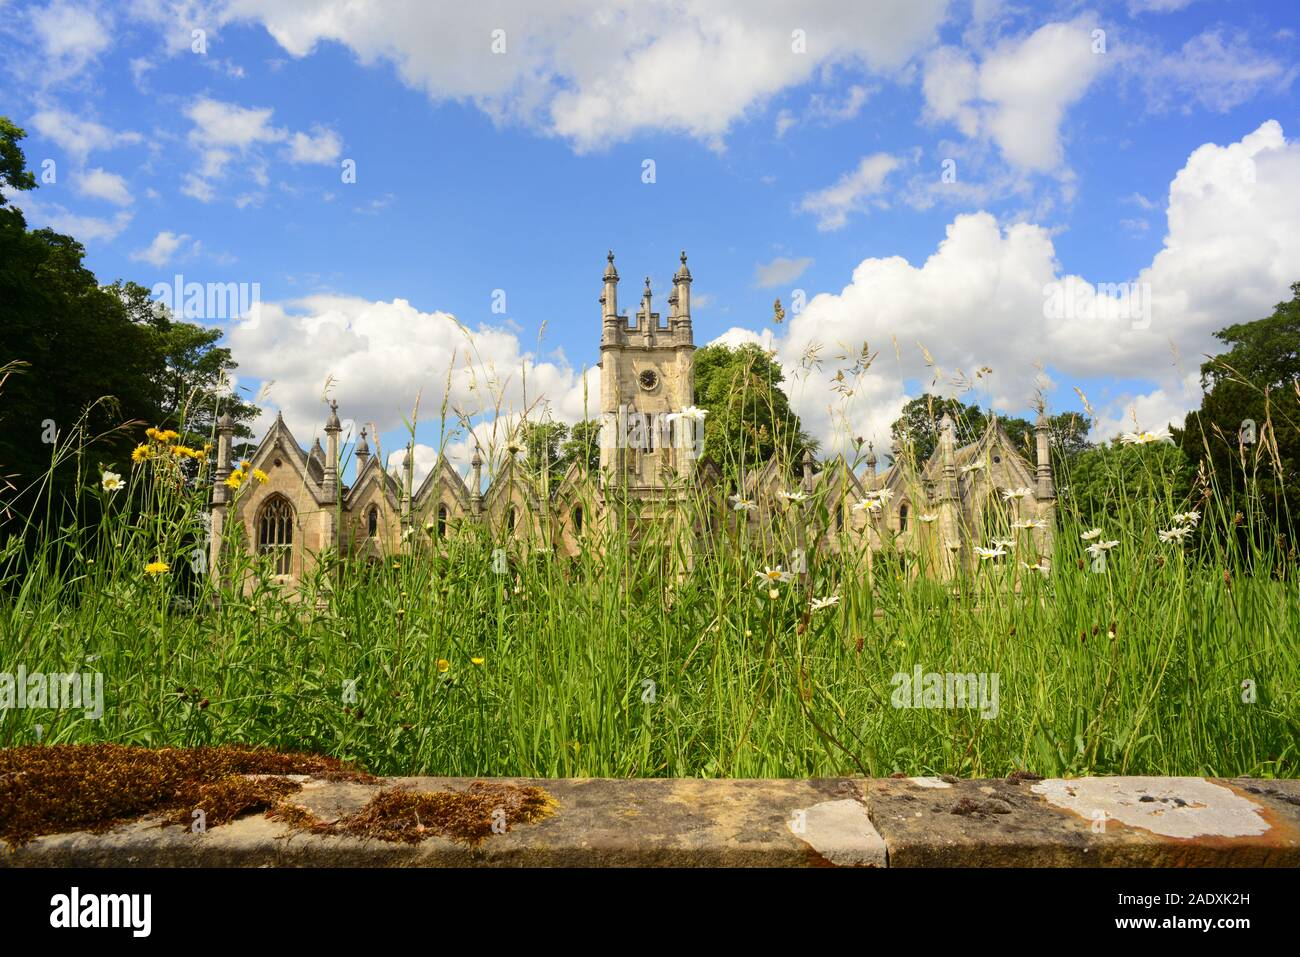 wild flowers by aberford almshouses designed by george fowler built in 1844 by Elizabeth and Mary Isabella Gascoigne Aberford yorkshire uk Stock Photo